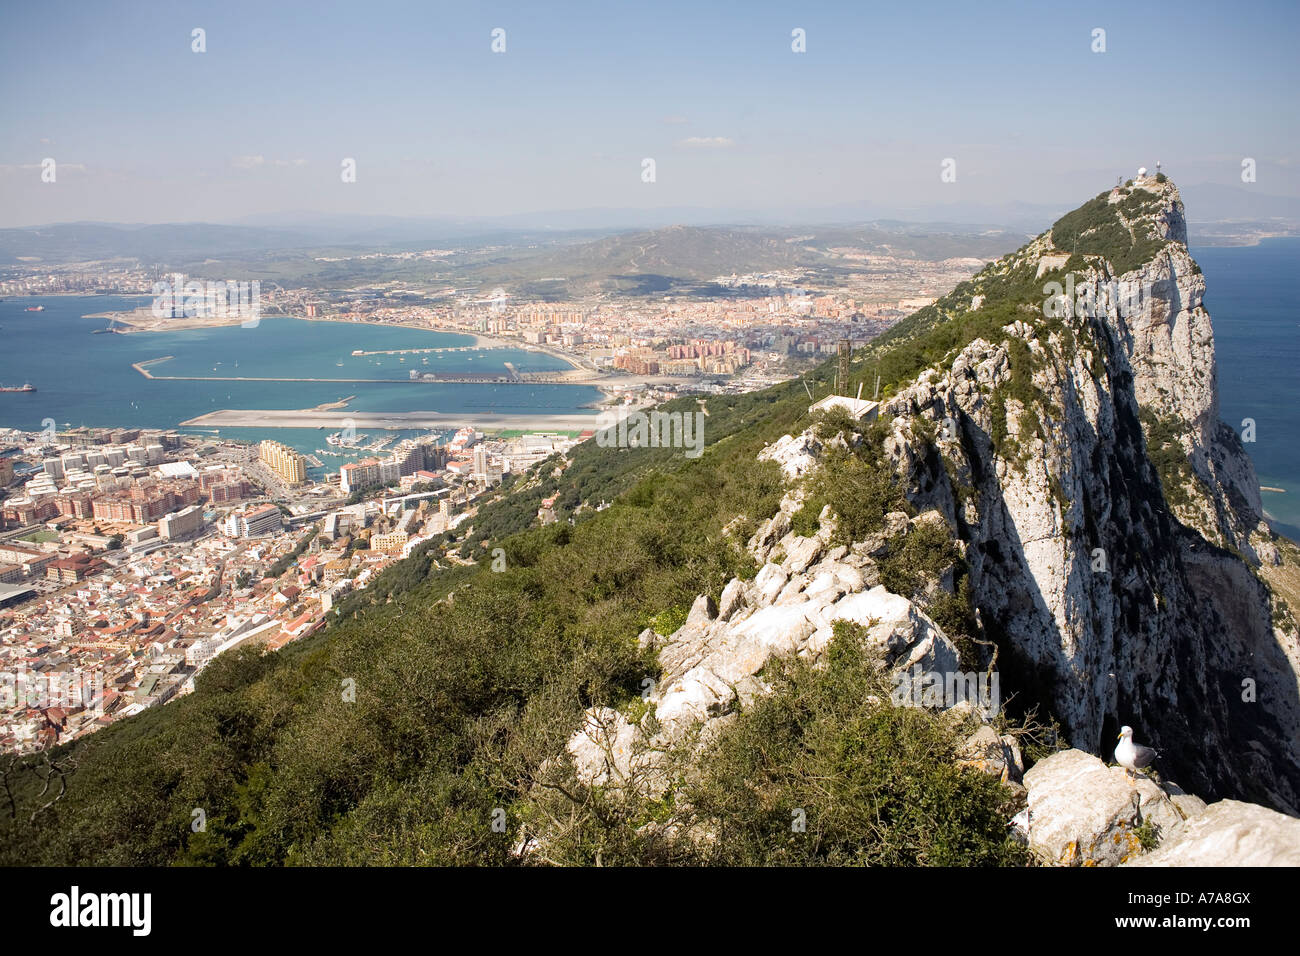 The Summit of the Rock of Gibraltar - Stock Image